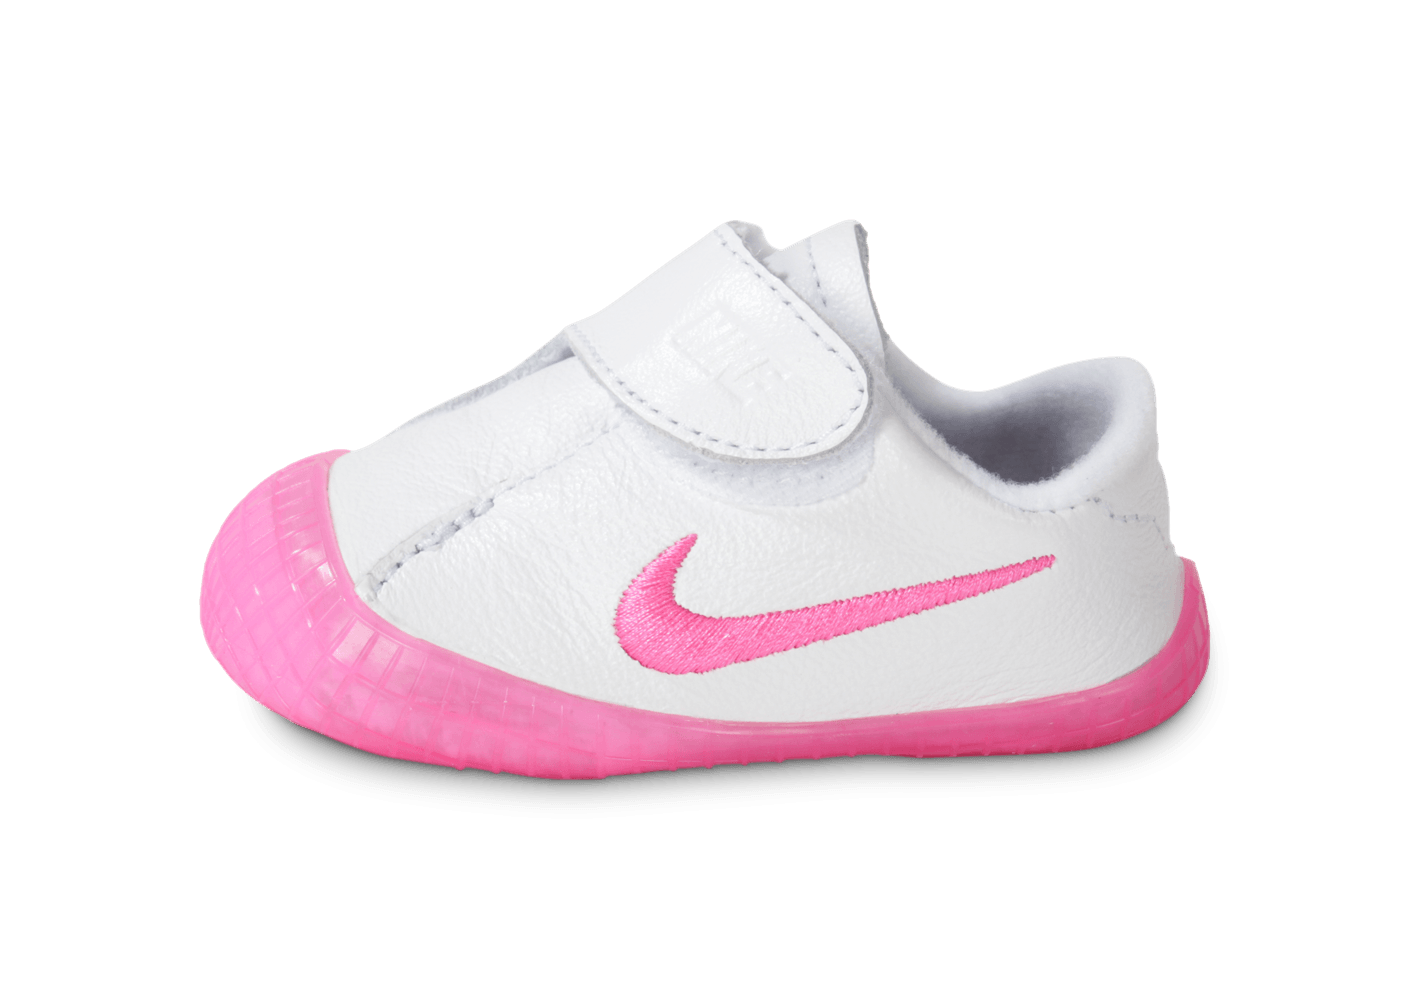 separation shoes c520b acc8f ... chaussures nike crib waffle bebe blanche et rose vue exterieure